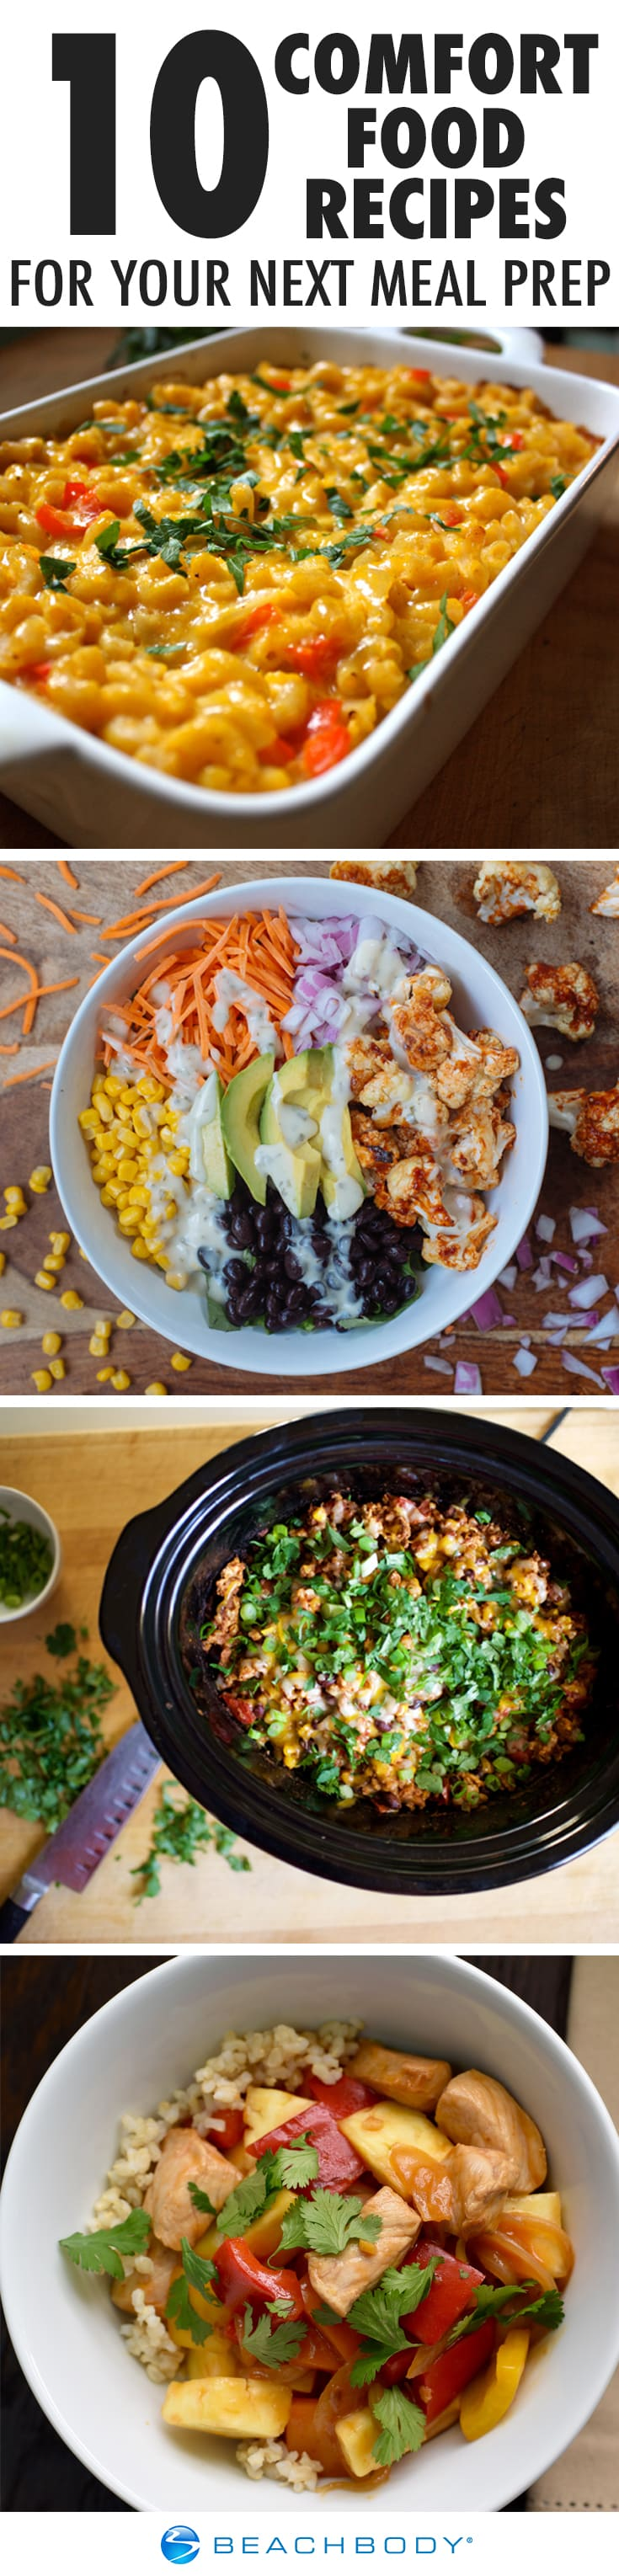 10 Comfort Food Recipes to Try in Your Next Meal Prep #mealprep #mealplan #mealplanning#comfortfood #healthycomfortfood #healthyrecipes #macandcheese #enchiladas #slowcooker